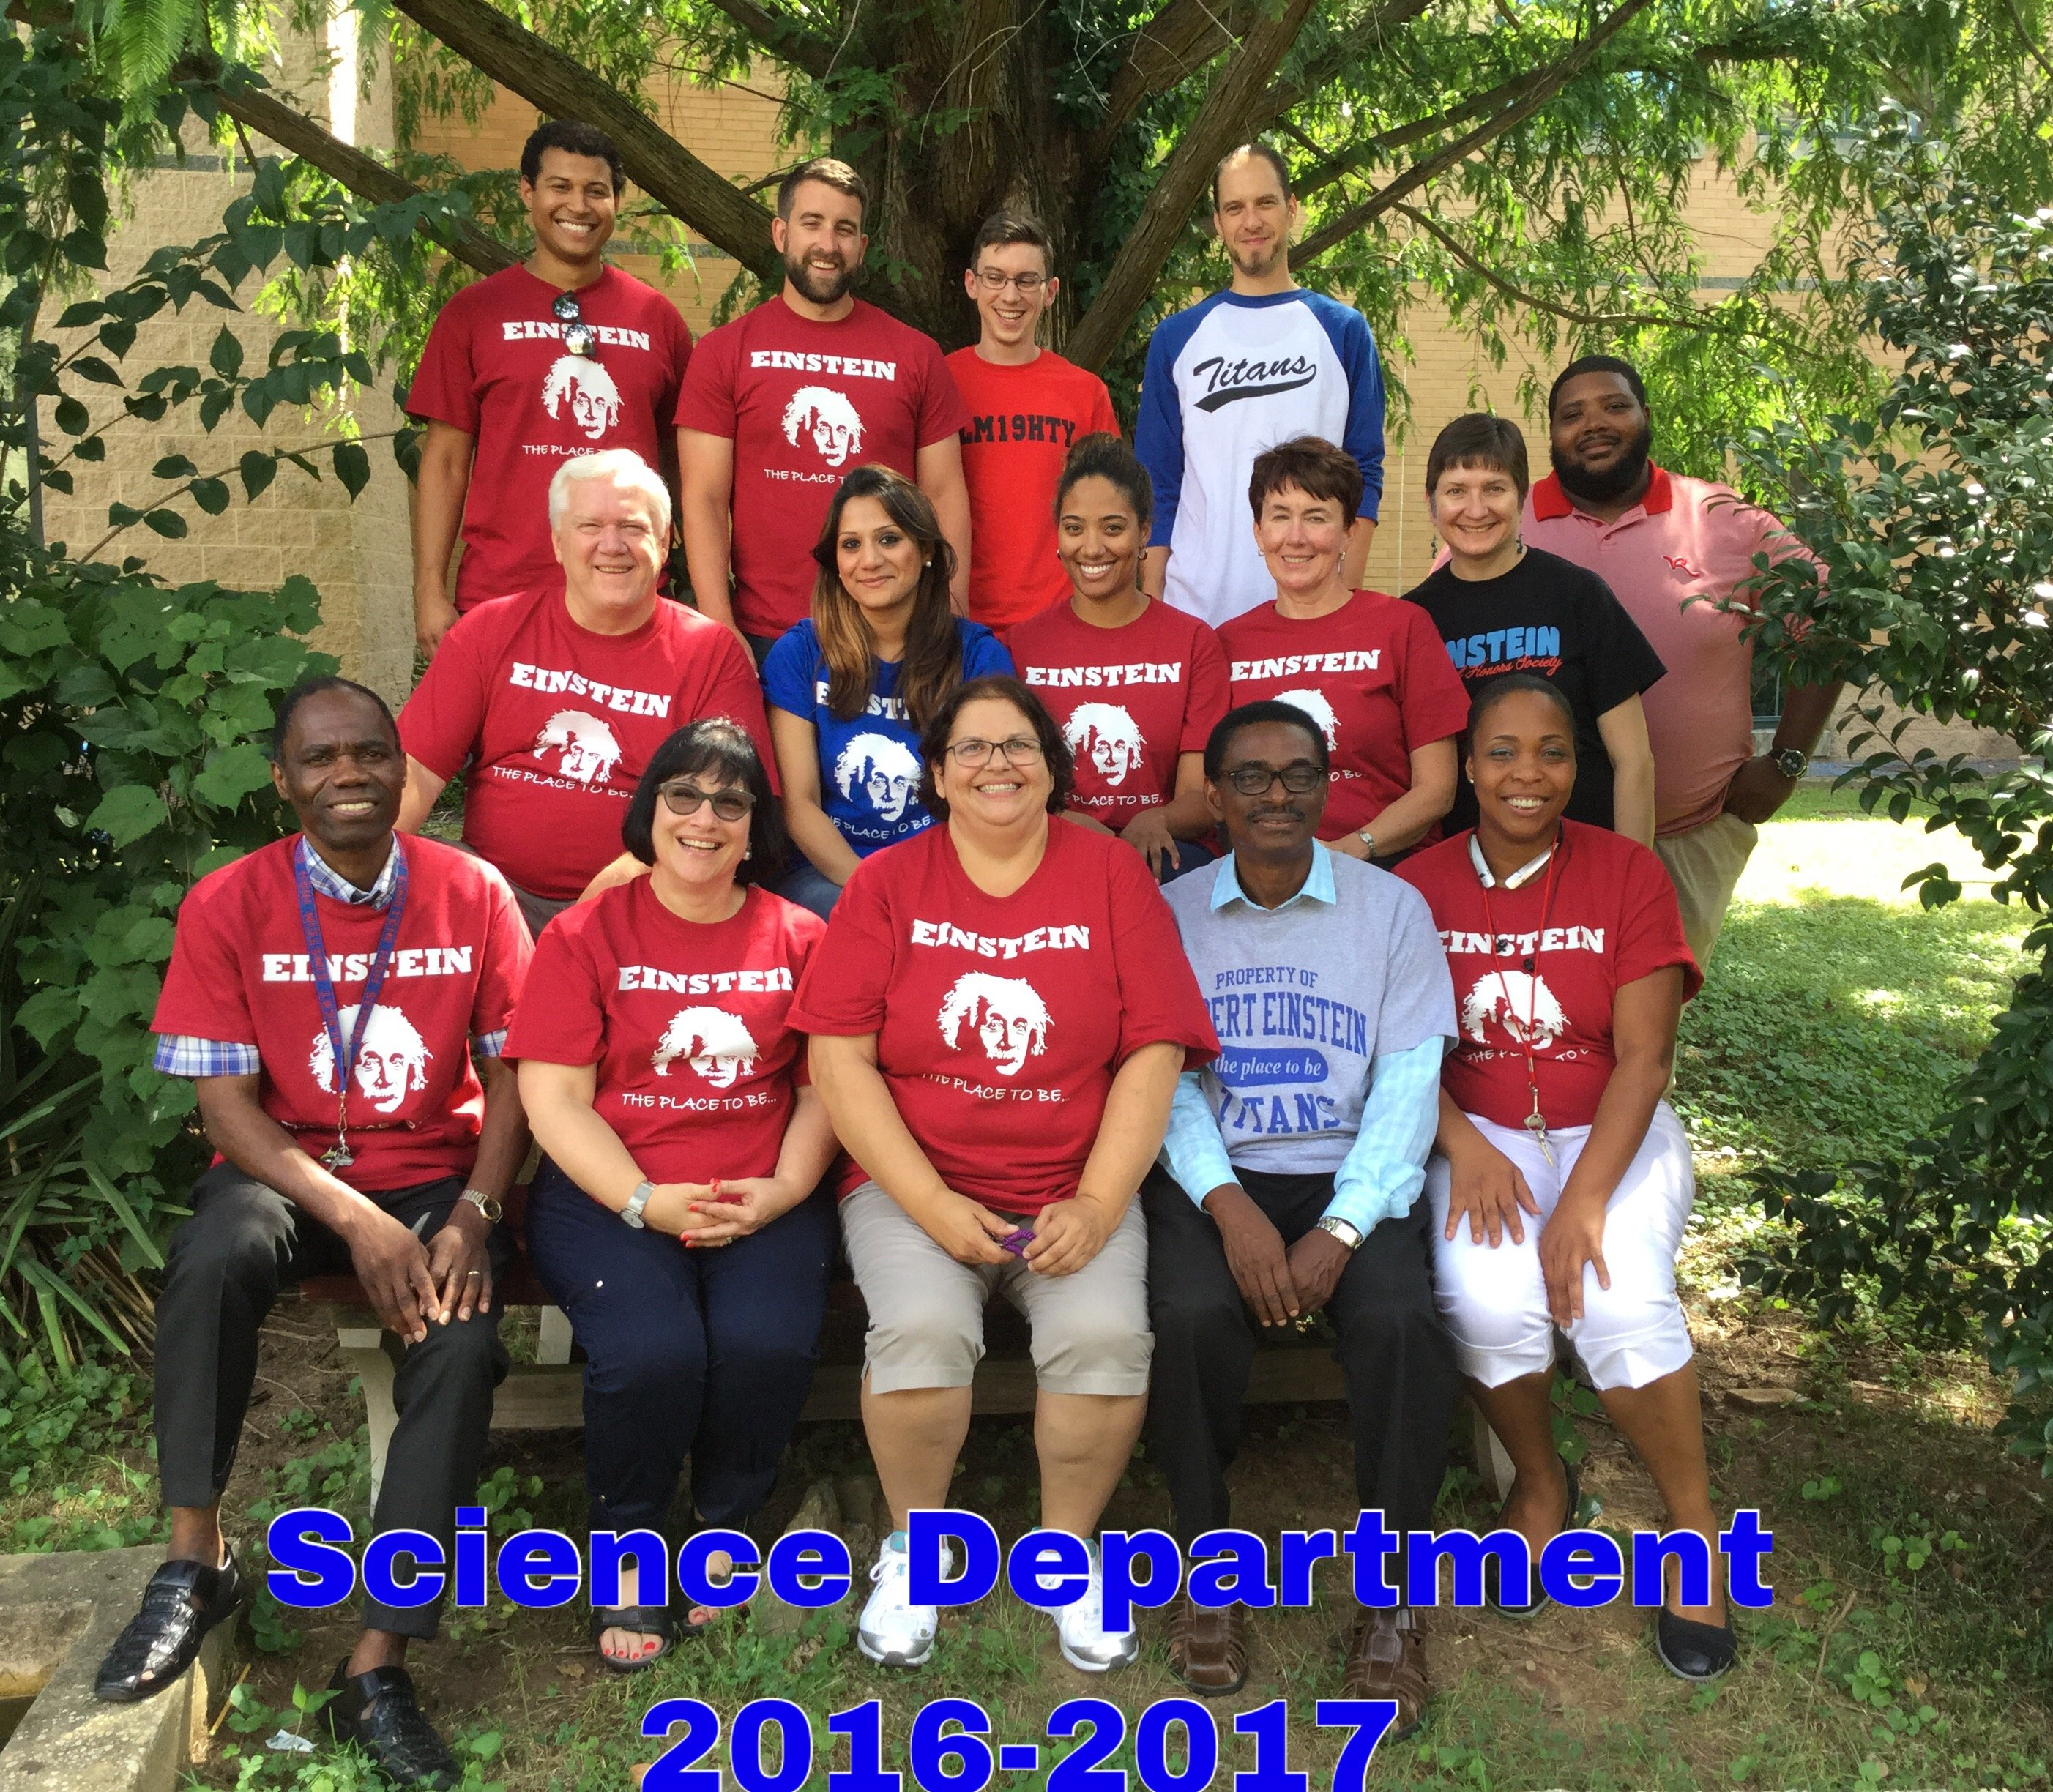 Science Department 2016-2017